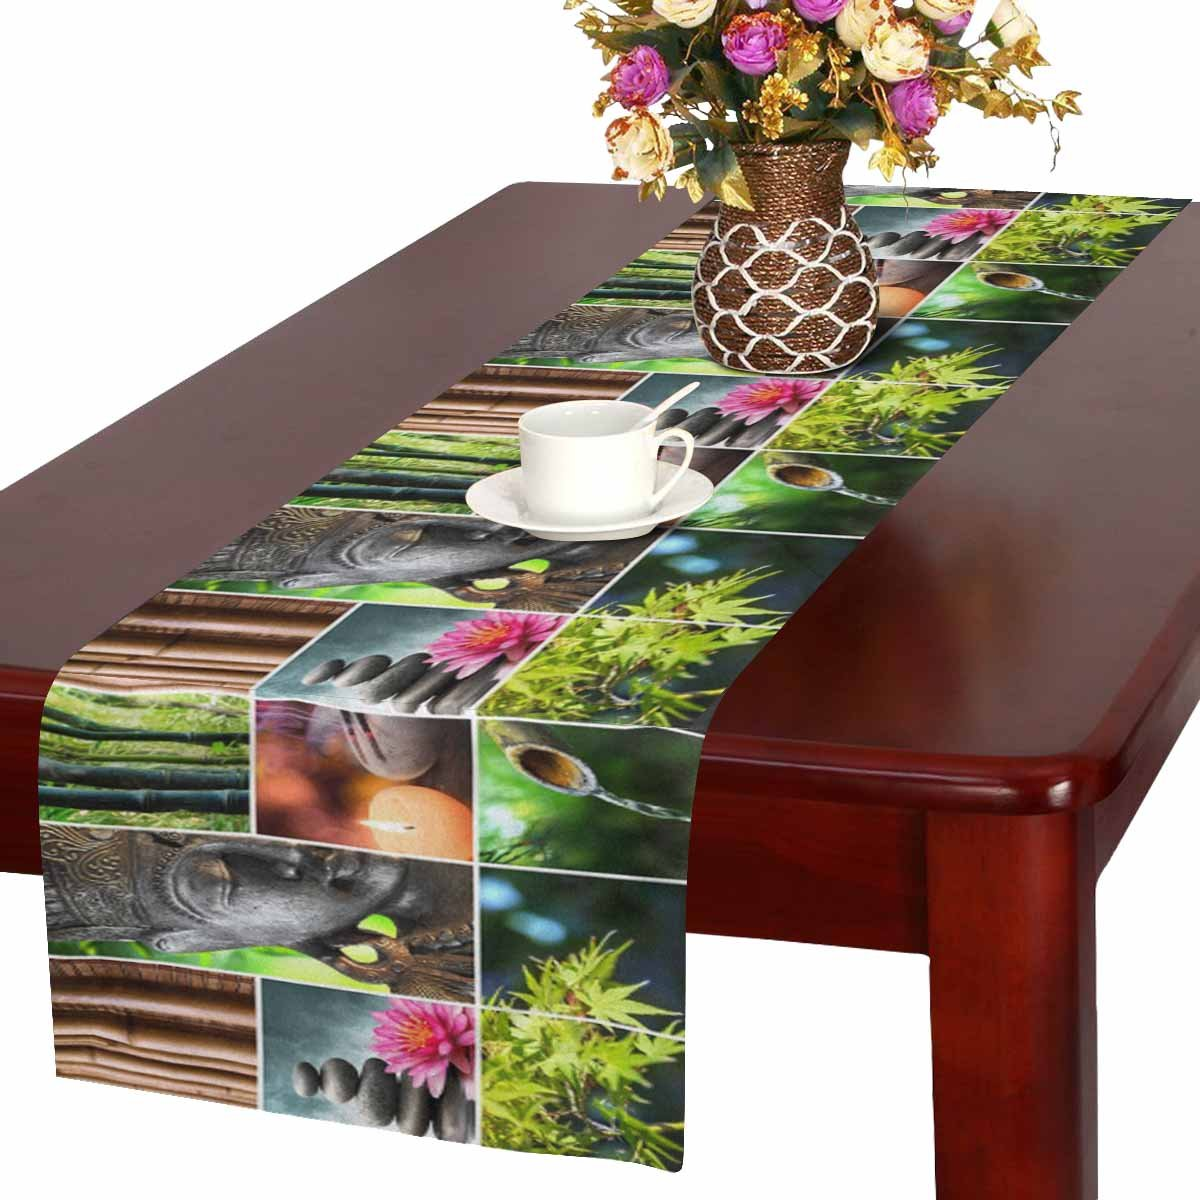 InterestPrint Spa Theme Oriental Culture Mosaic with Buddha and Bamboo Nature Table Runner Cotton Linen Home Decor for Home Kitchen Wedding Party Banquet Decoration 16 x 72 Inches